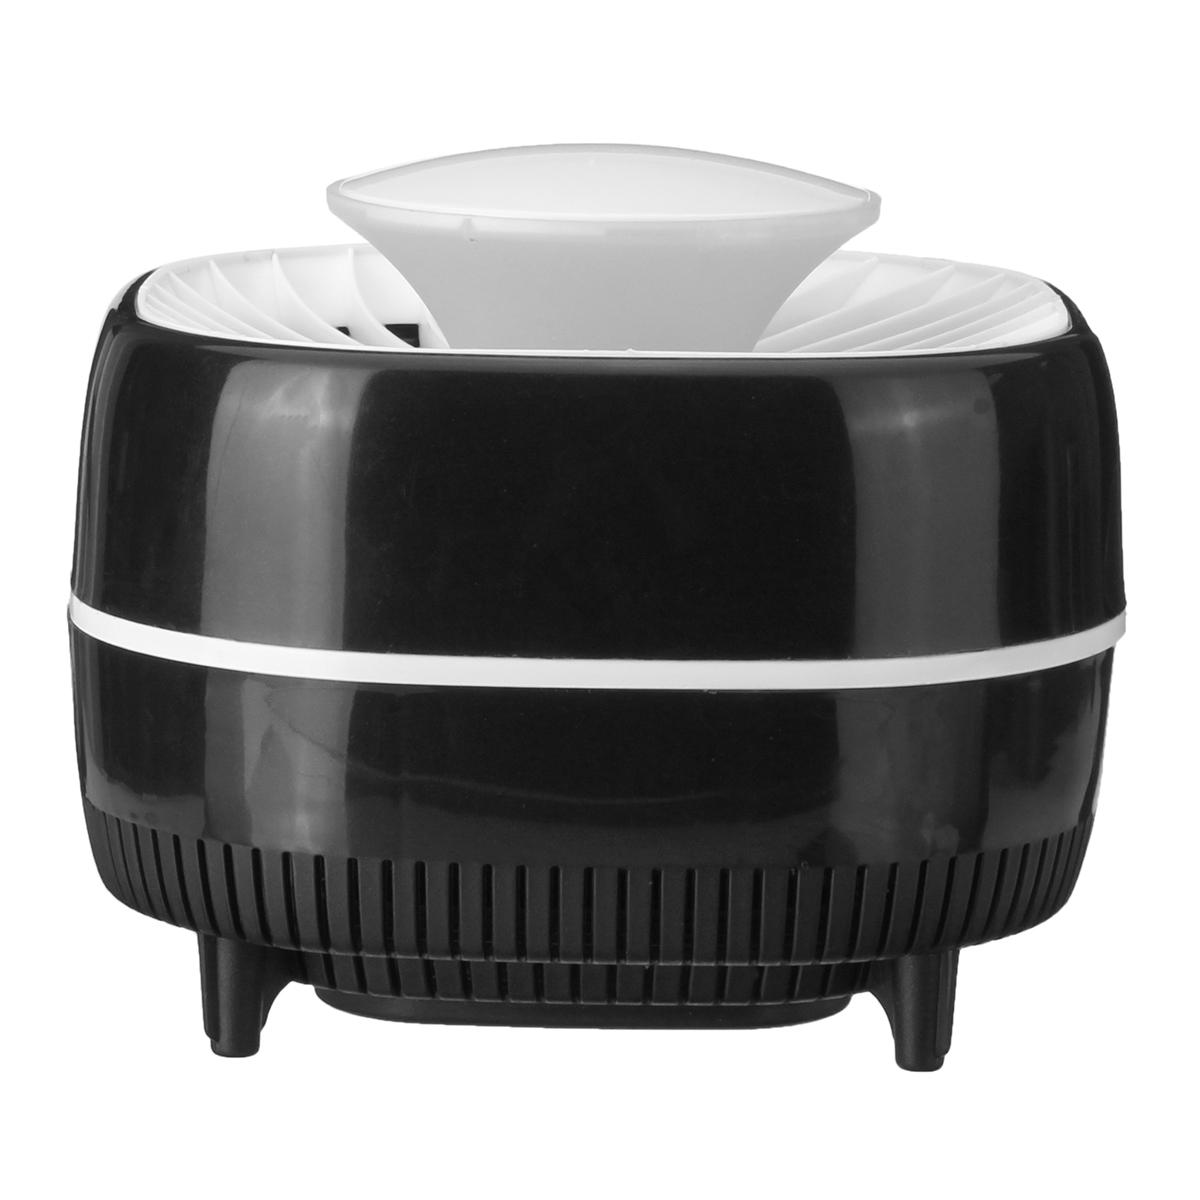 UV Mosquito Insect Killer Lamp Photocatalyst Mosquito Killer Mosquito Repellent Anti-Mosquito Lamp Electric Insect Fly B